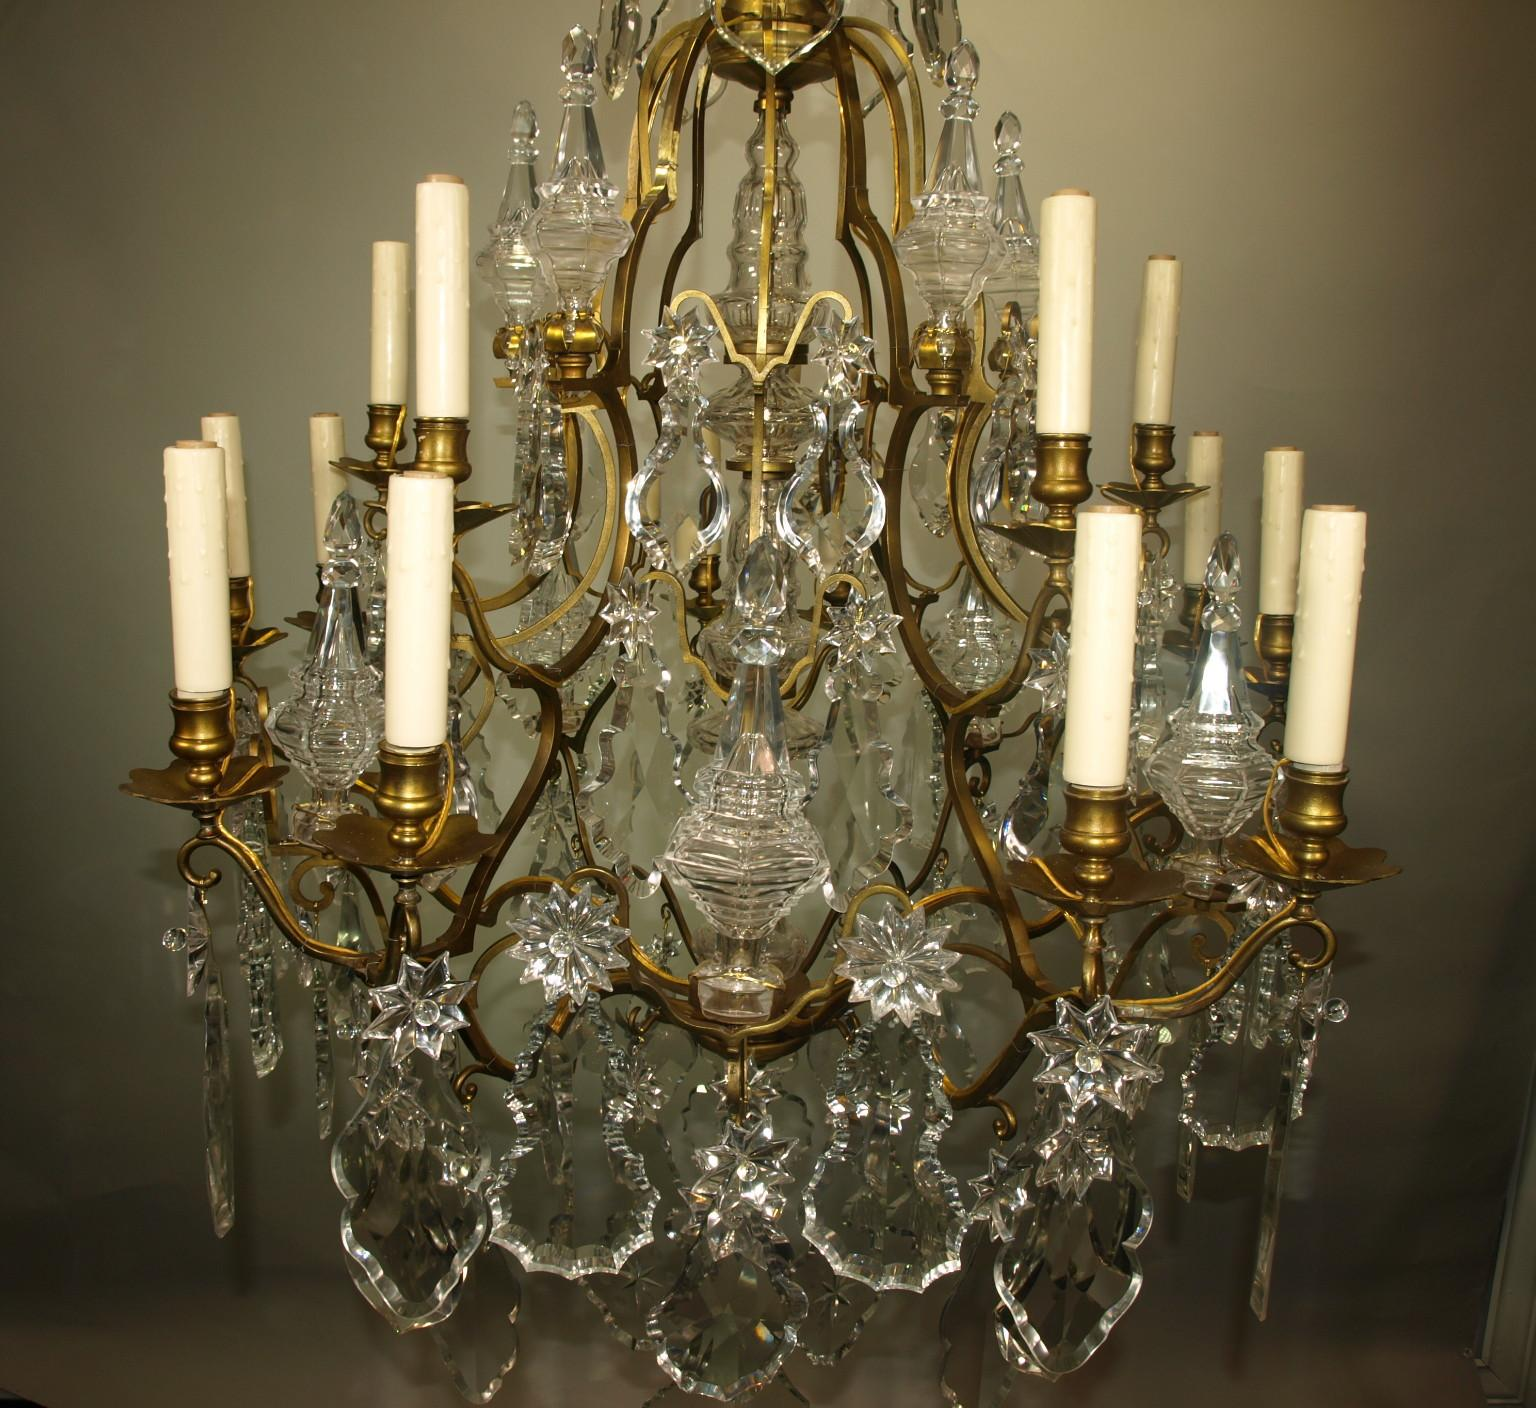 Antique Chandelier Baccarat - Image 6 of 8 : baccarat lighting - www.canuckmediamonitor.org